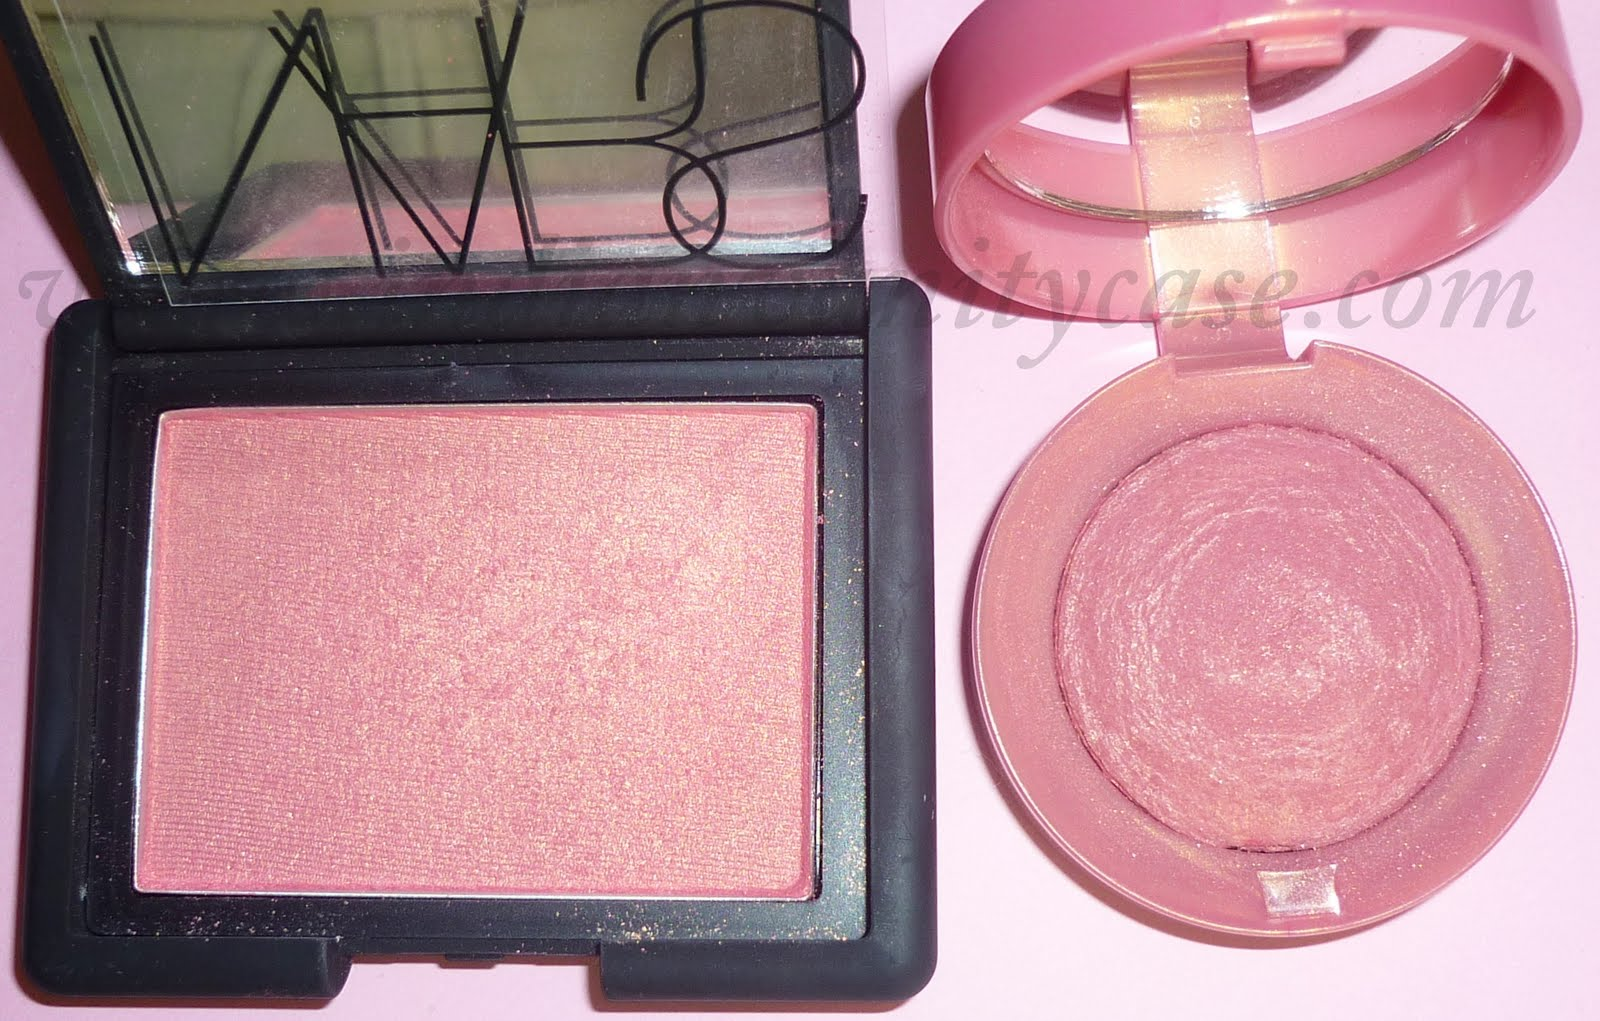 Blush similar to nars orgasm